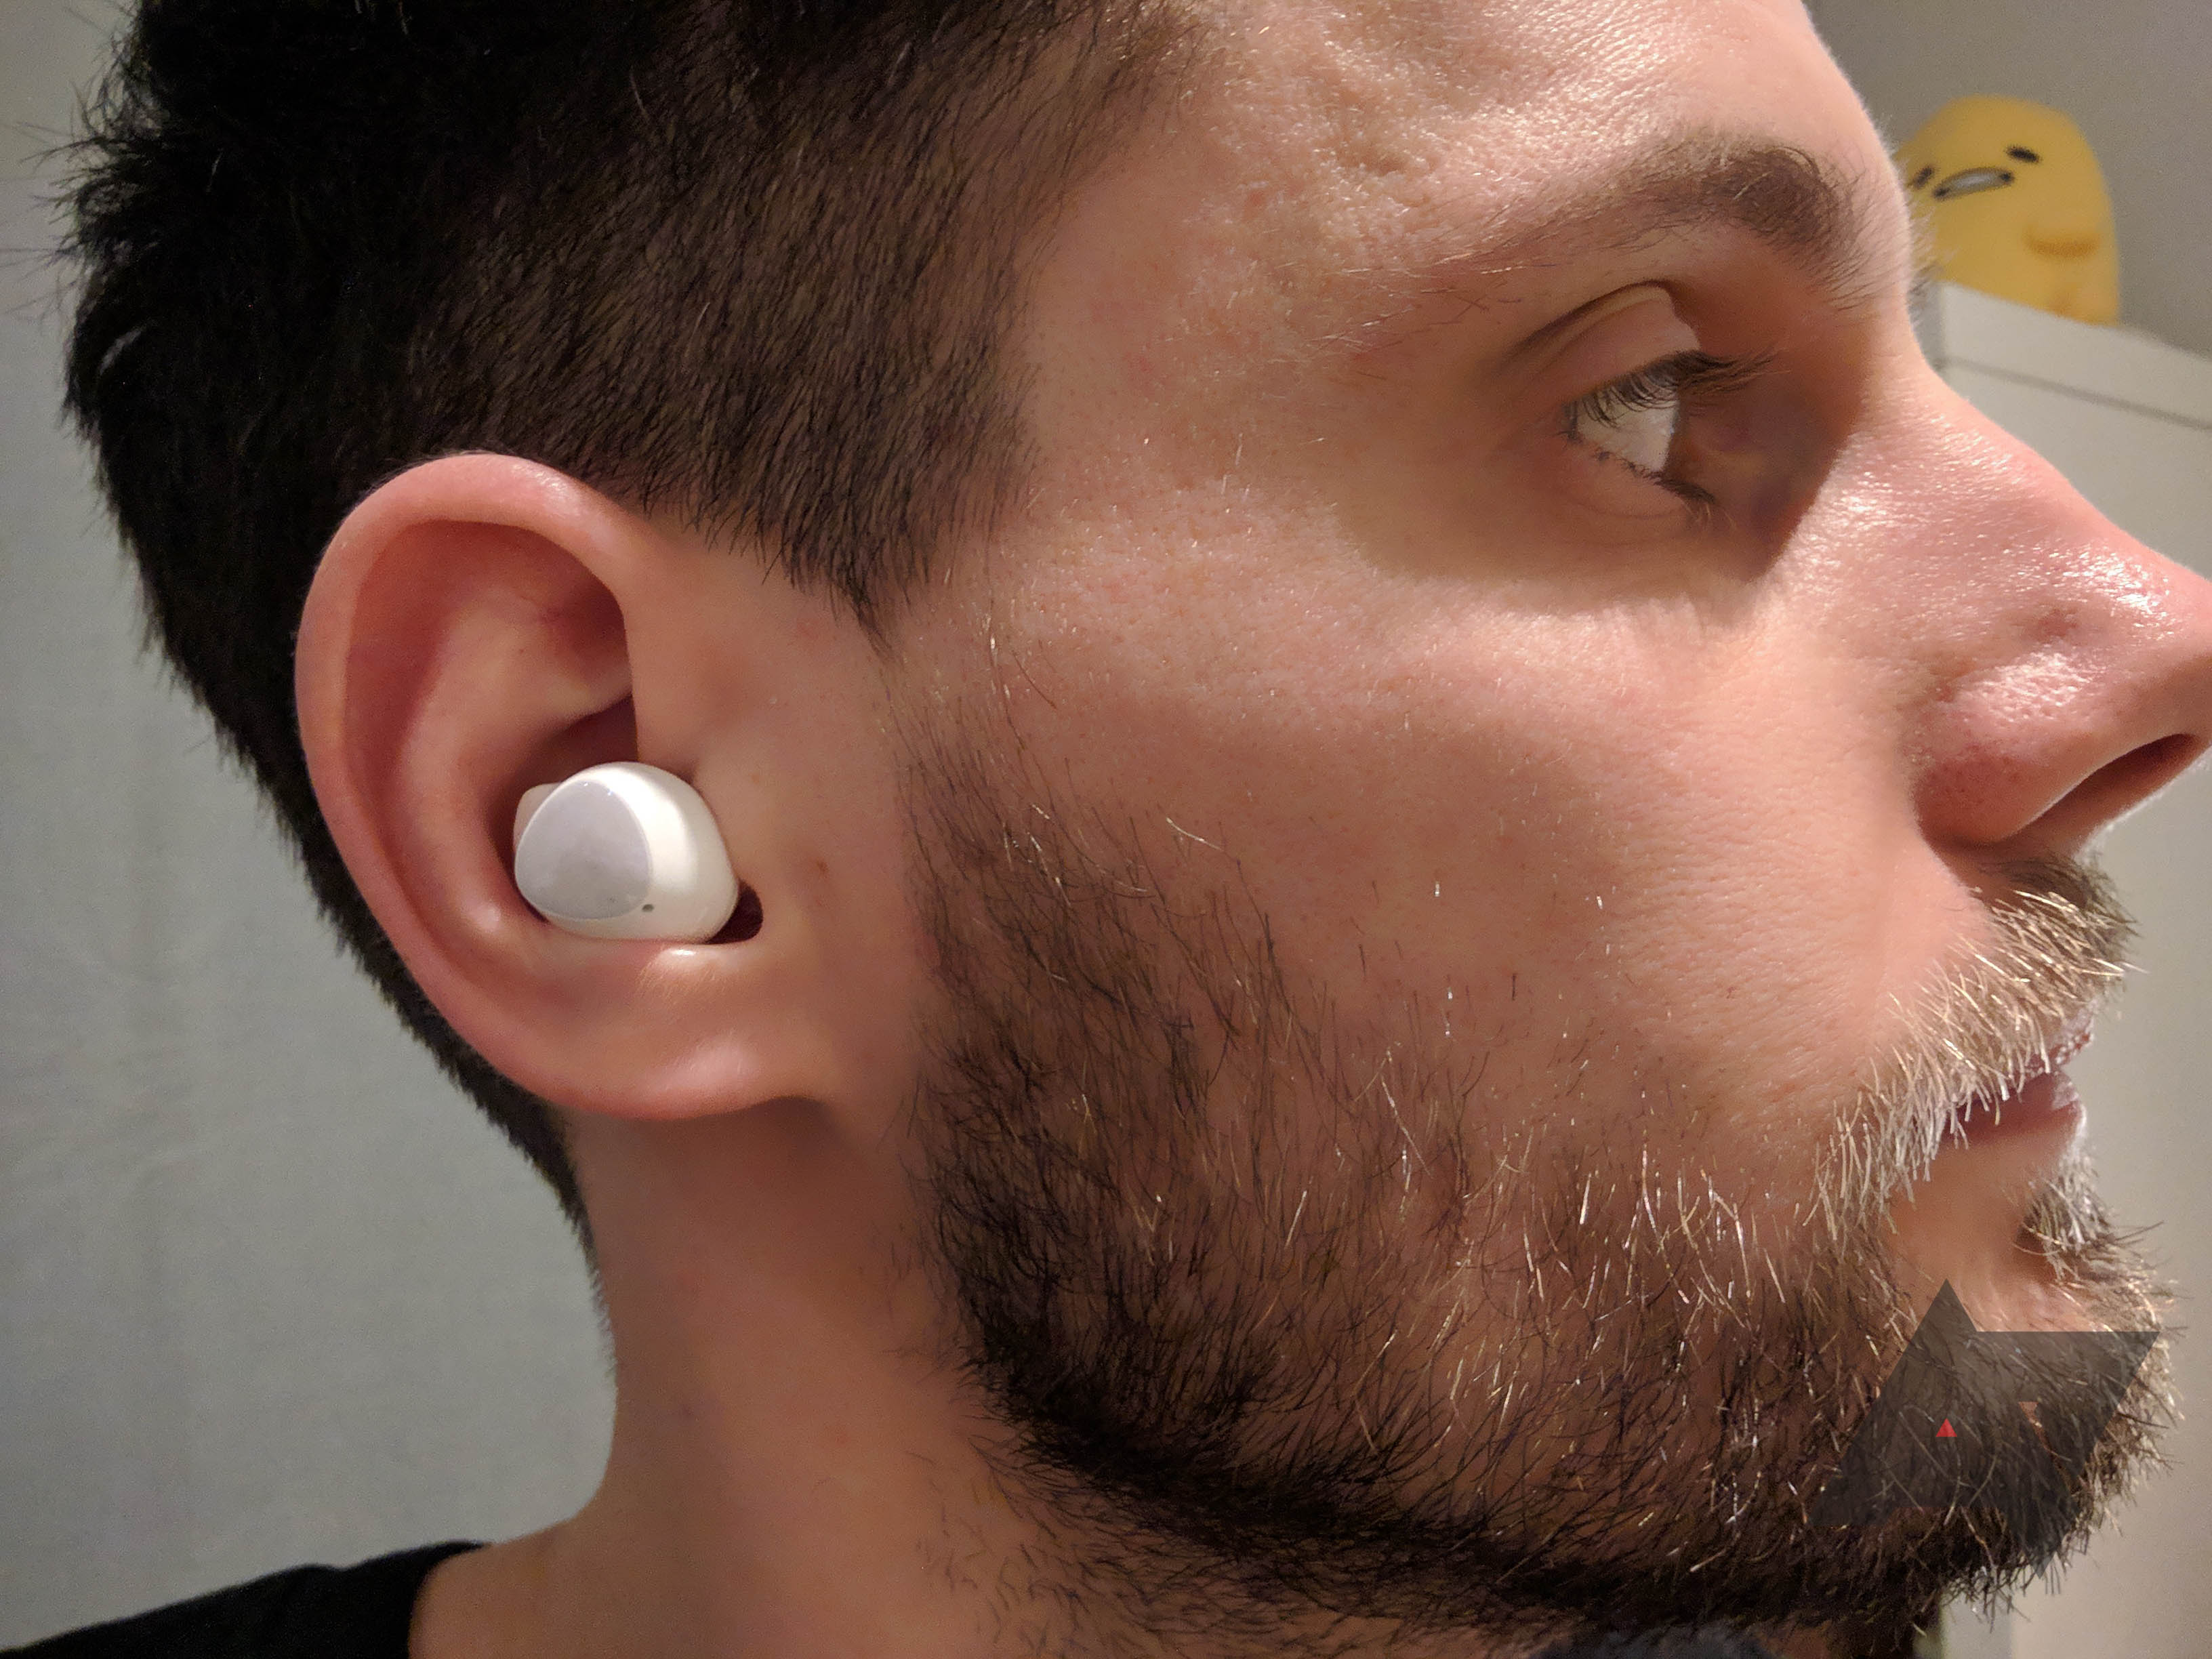 Samsung's excellent Galaxy Buds hit all the right notes at the right